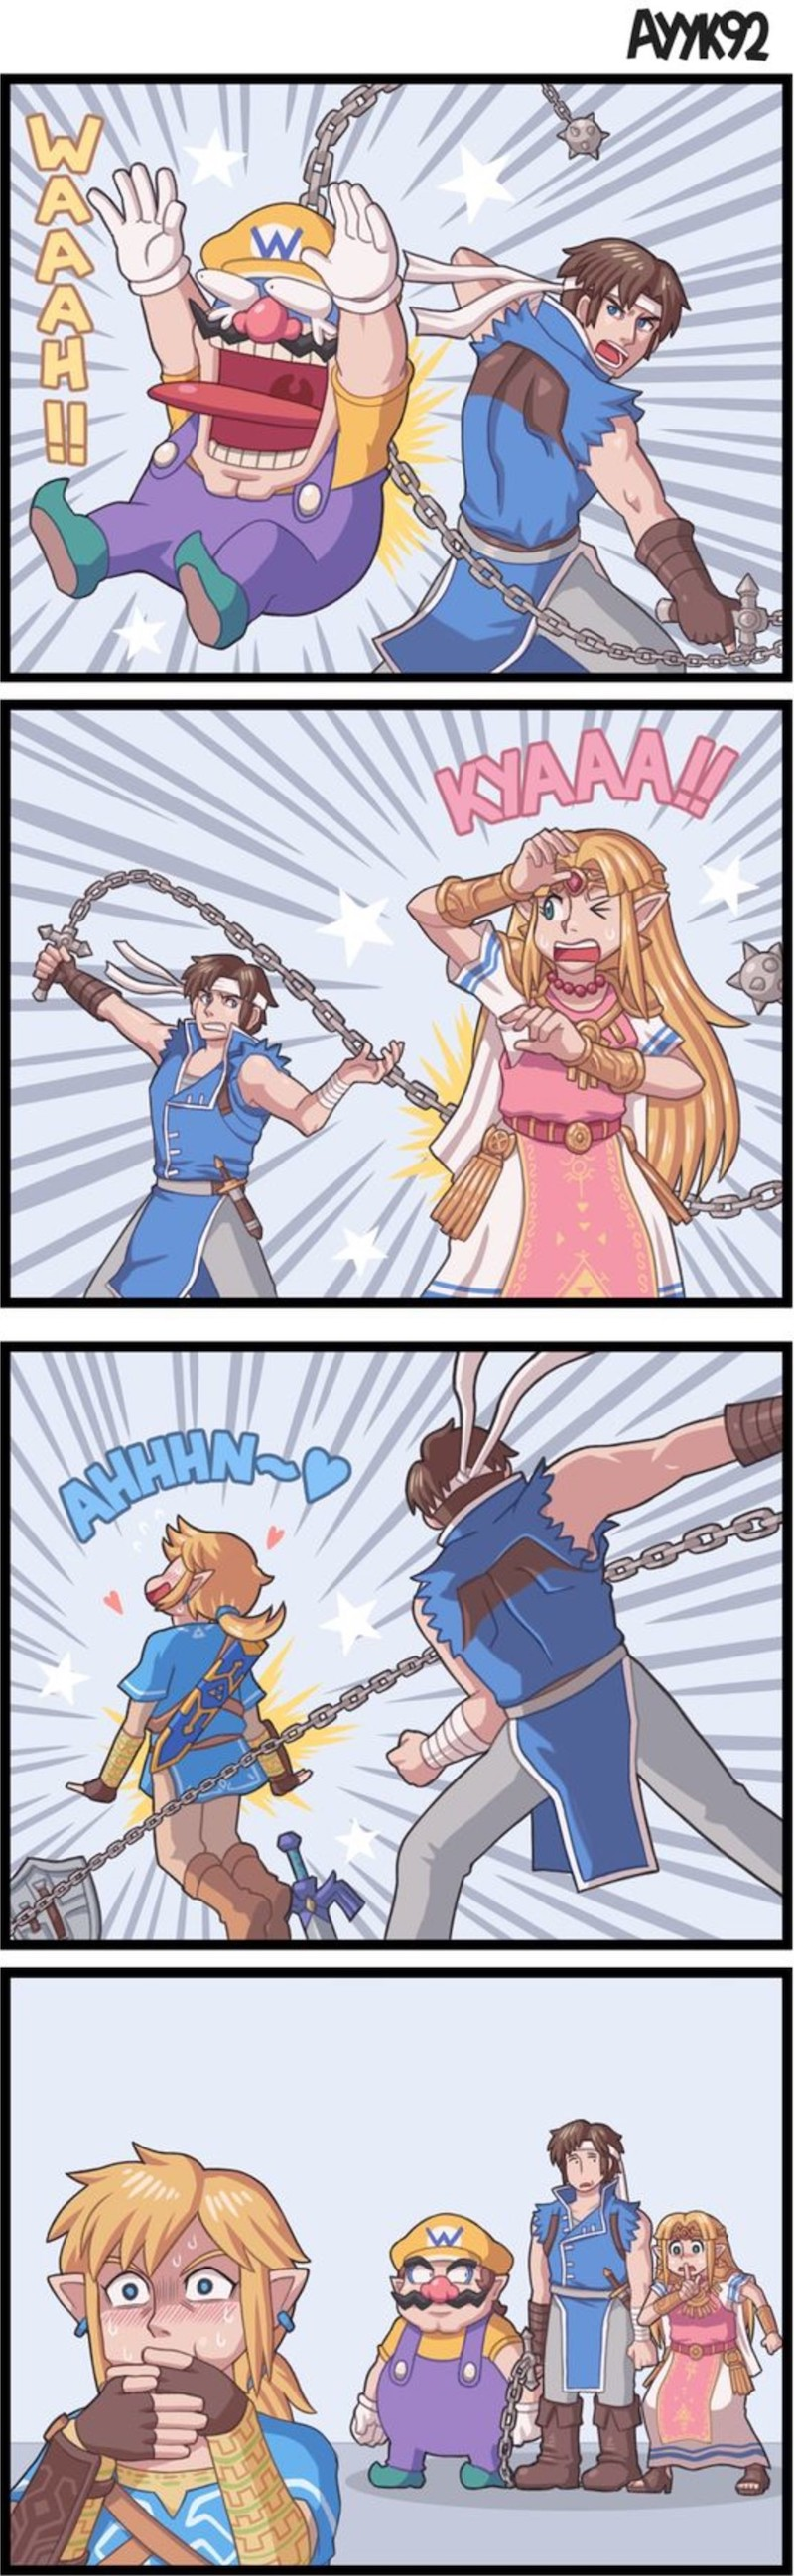 Something you want to talk about Link